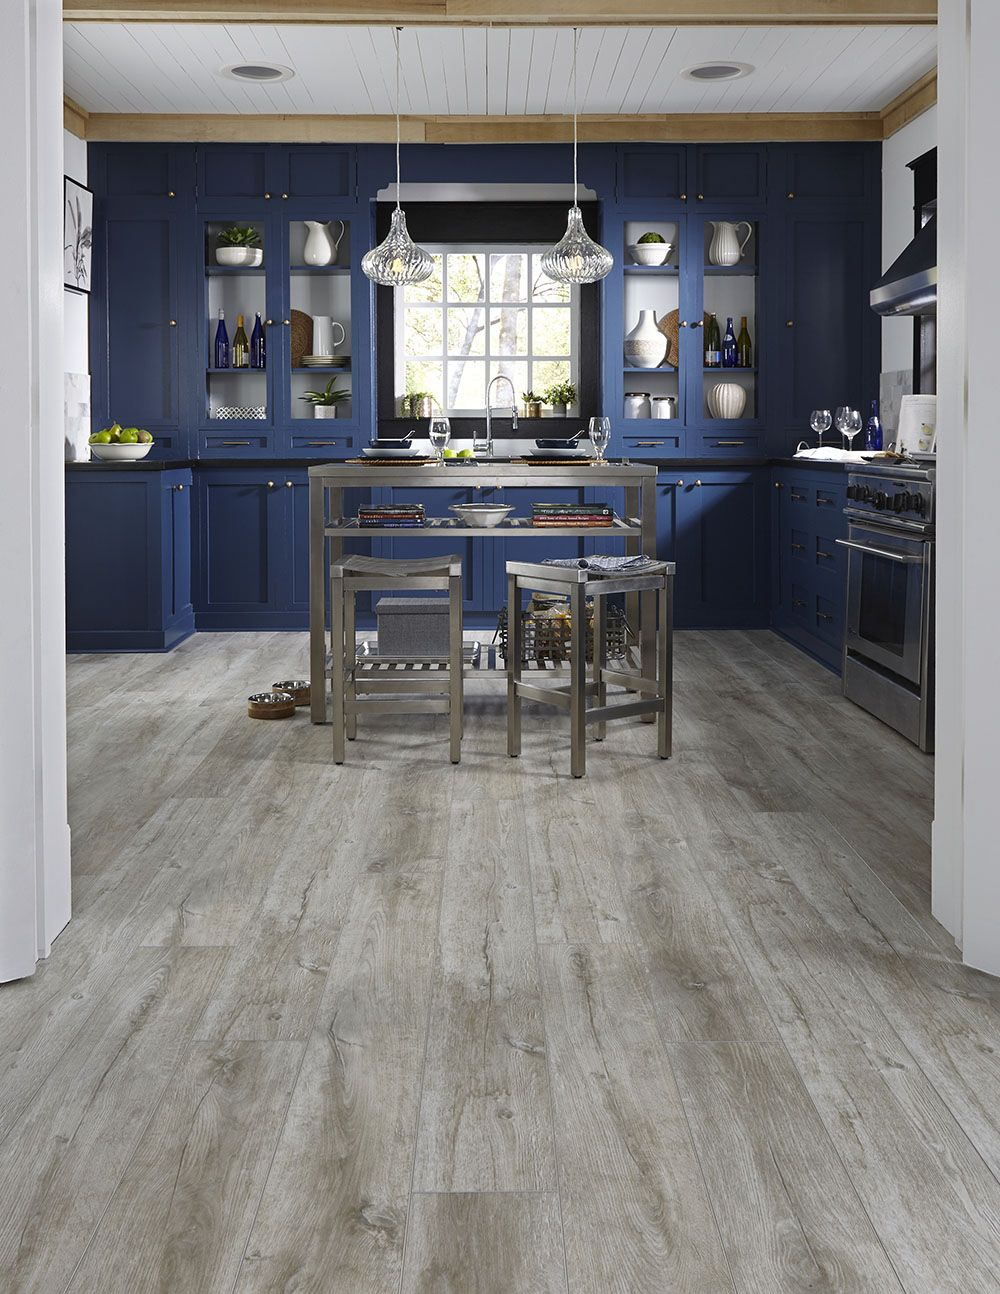 Adura Max Apex Aspen Is A Refined European Oak Look With Exceptional Character And Detail